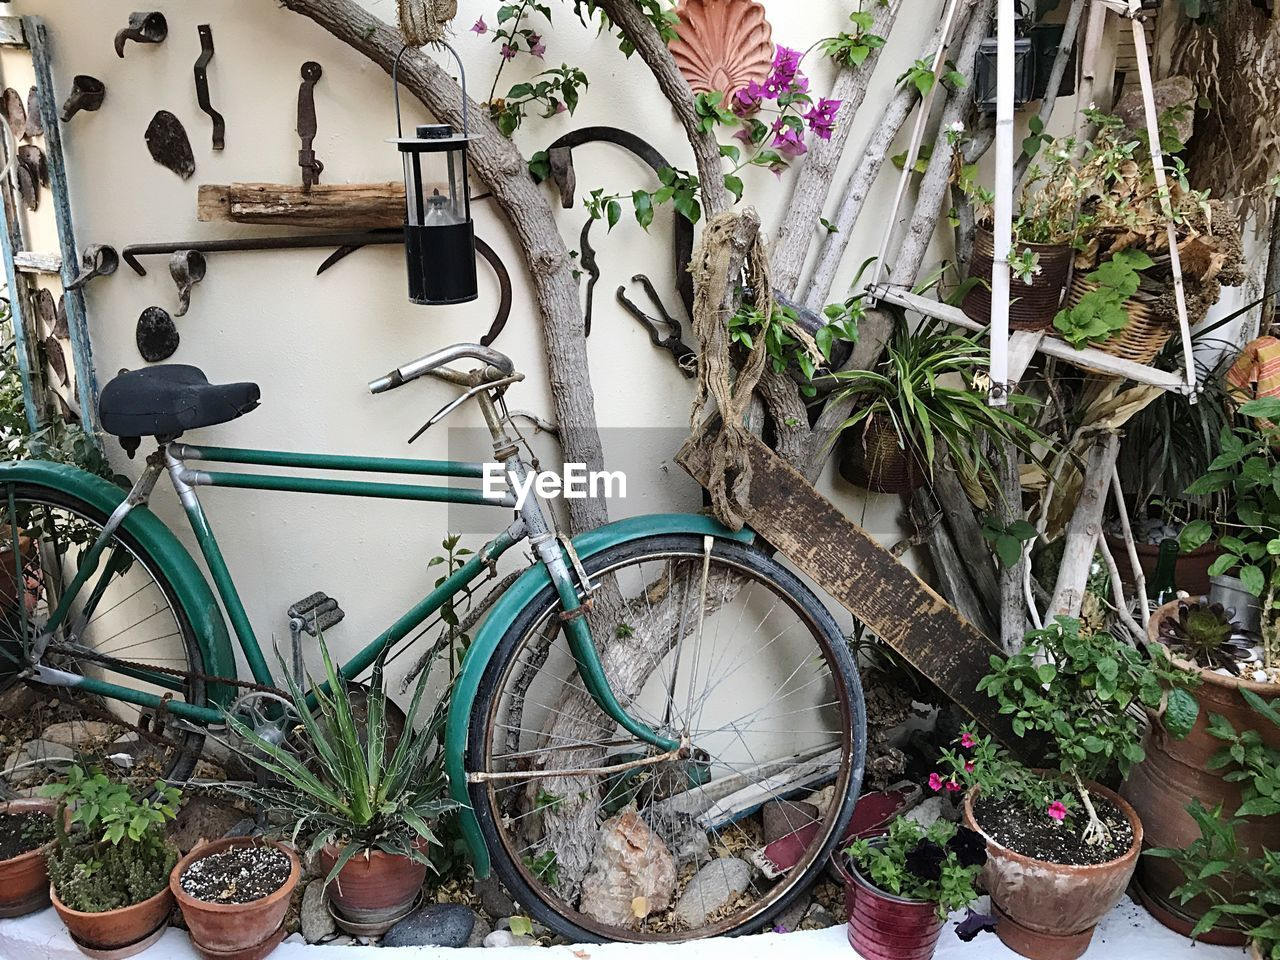 plant, bicycle, potted plant, mode of transportation, transportation, growth, no people, land vehicle, nature, stationary, day, green color, wall - building feature, plant part, outdoors, leaf, architecture, built structure, wheel, flowering plant, houseplant, flower pot